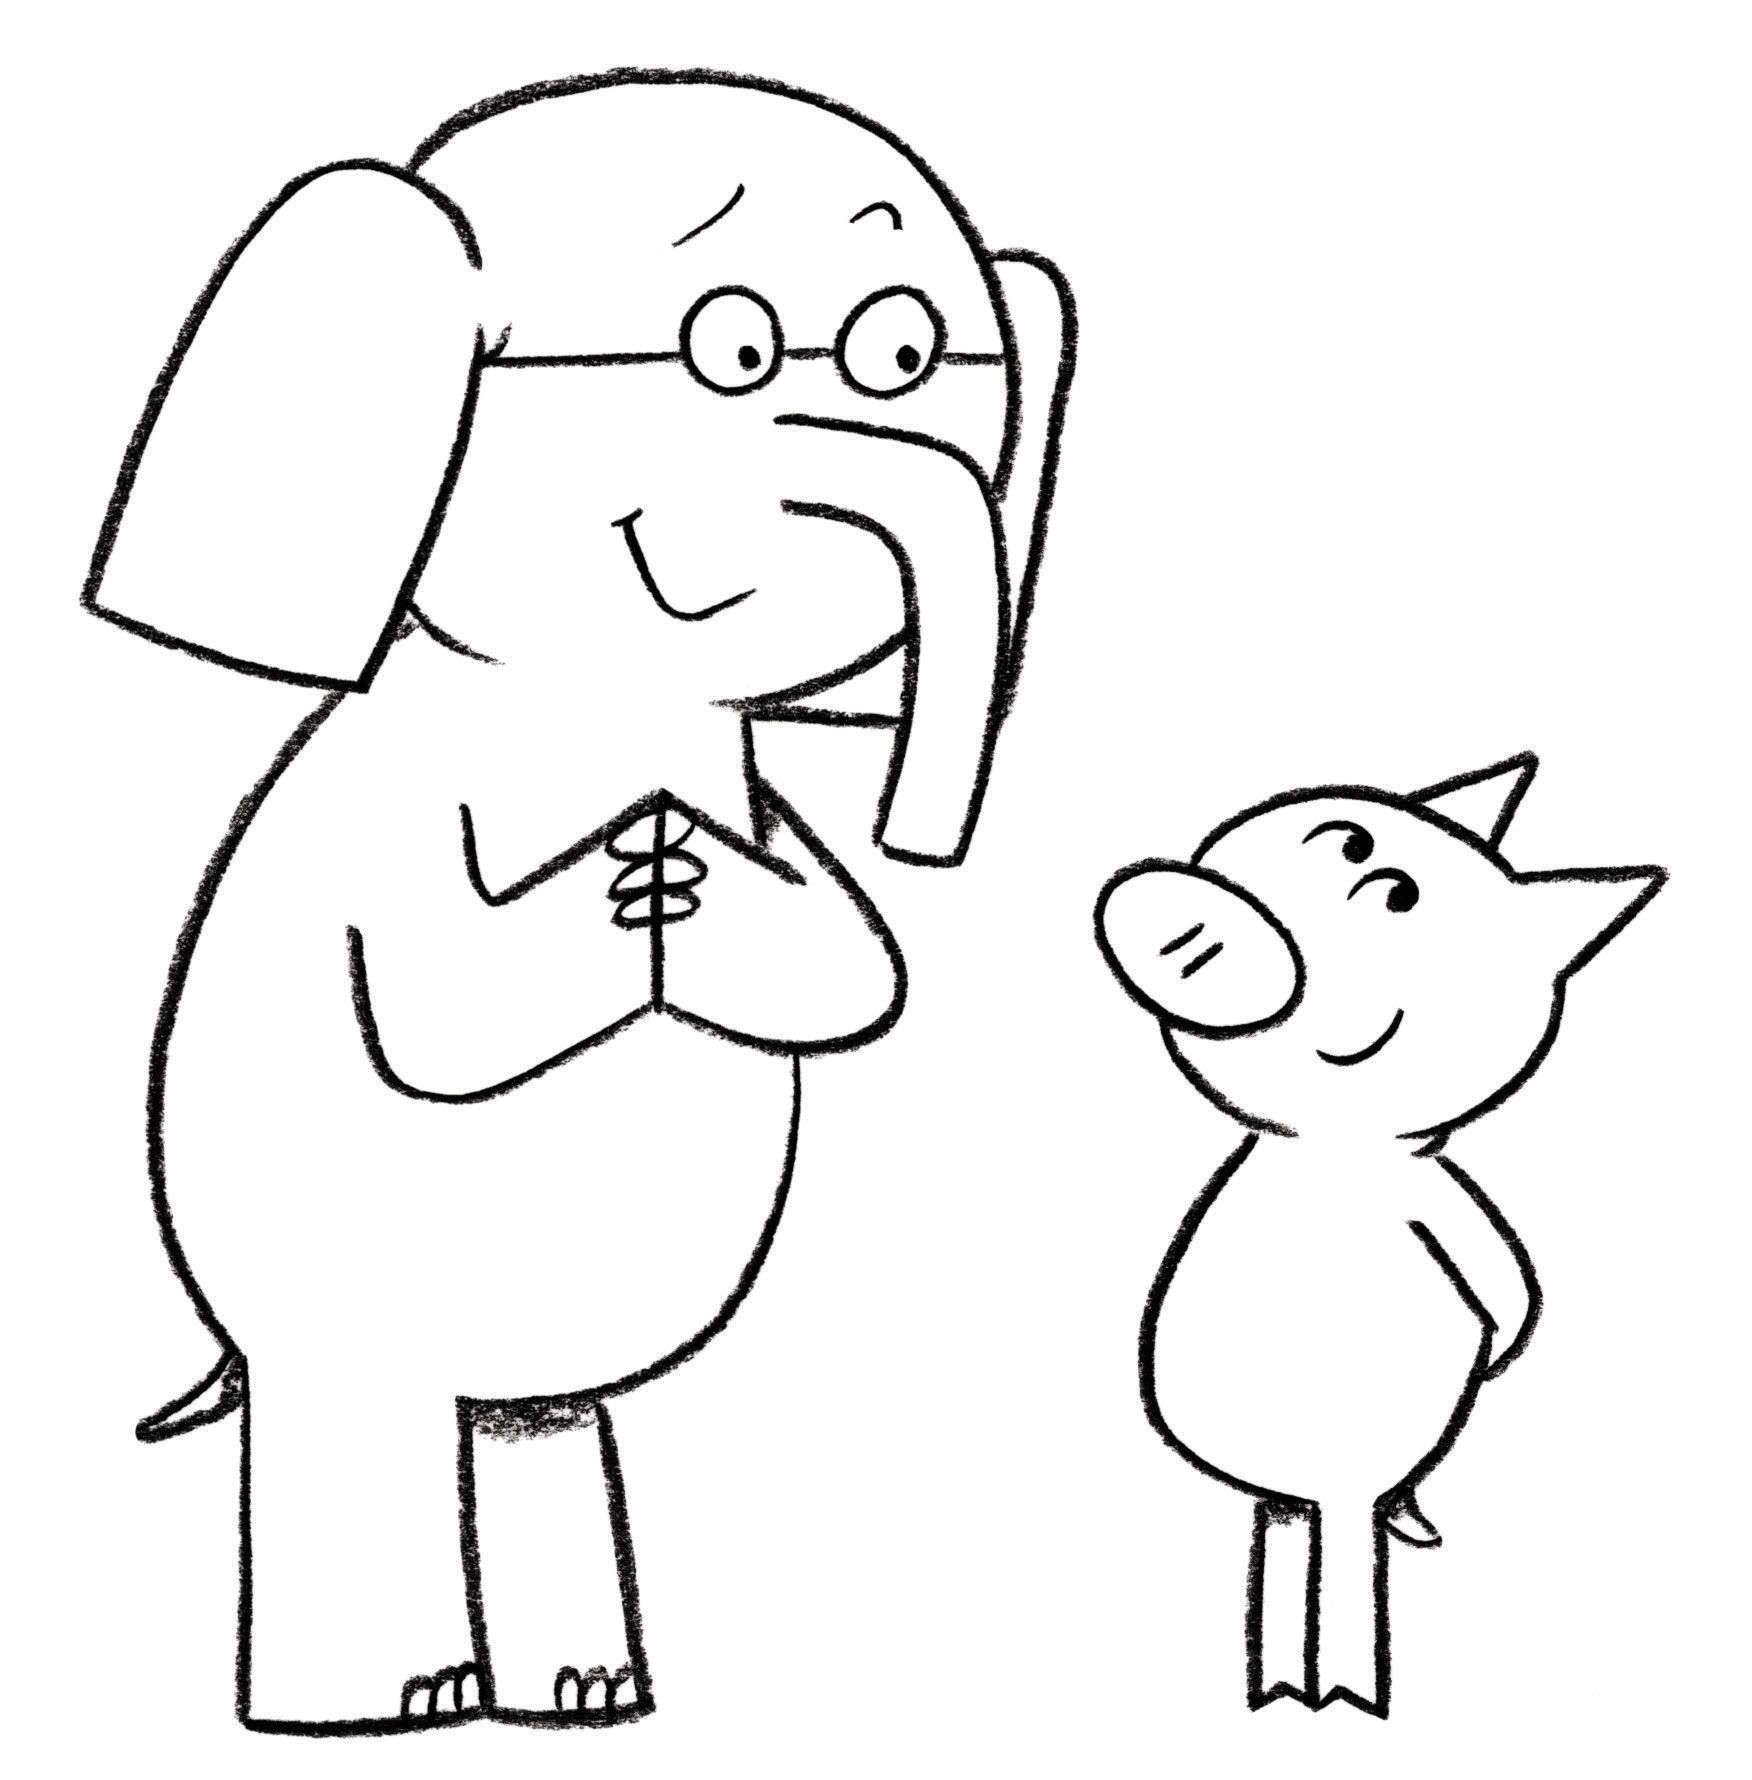 Download Or Print This Amazing Coloring Page Elephant And Piggie Coloring Page Piggie And Elephant Elephant Coloring Page Kindergarten Coloring Pages